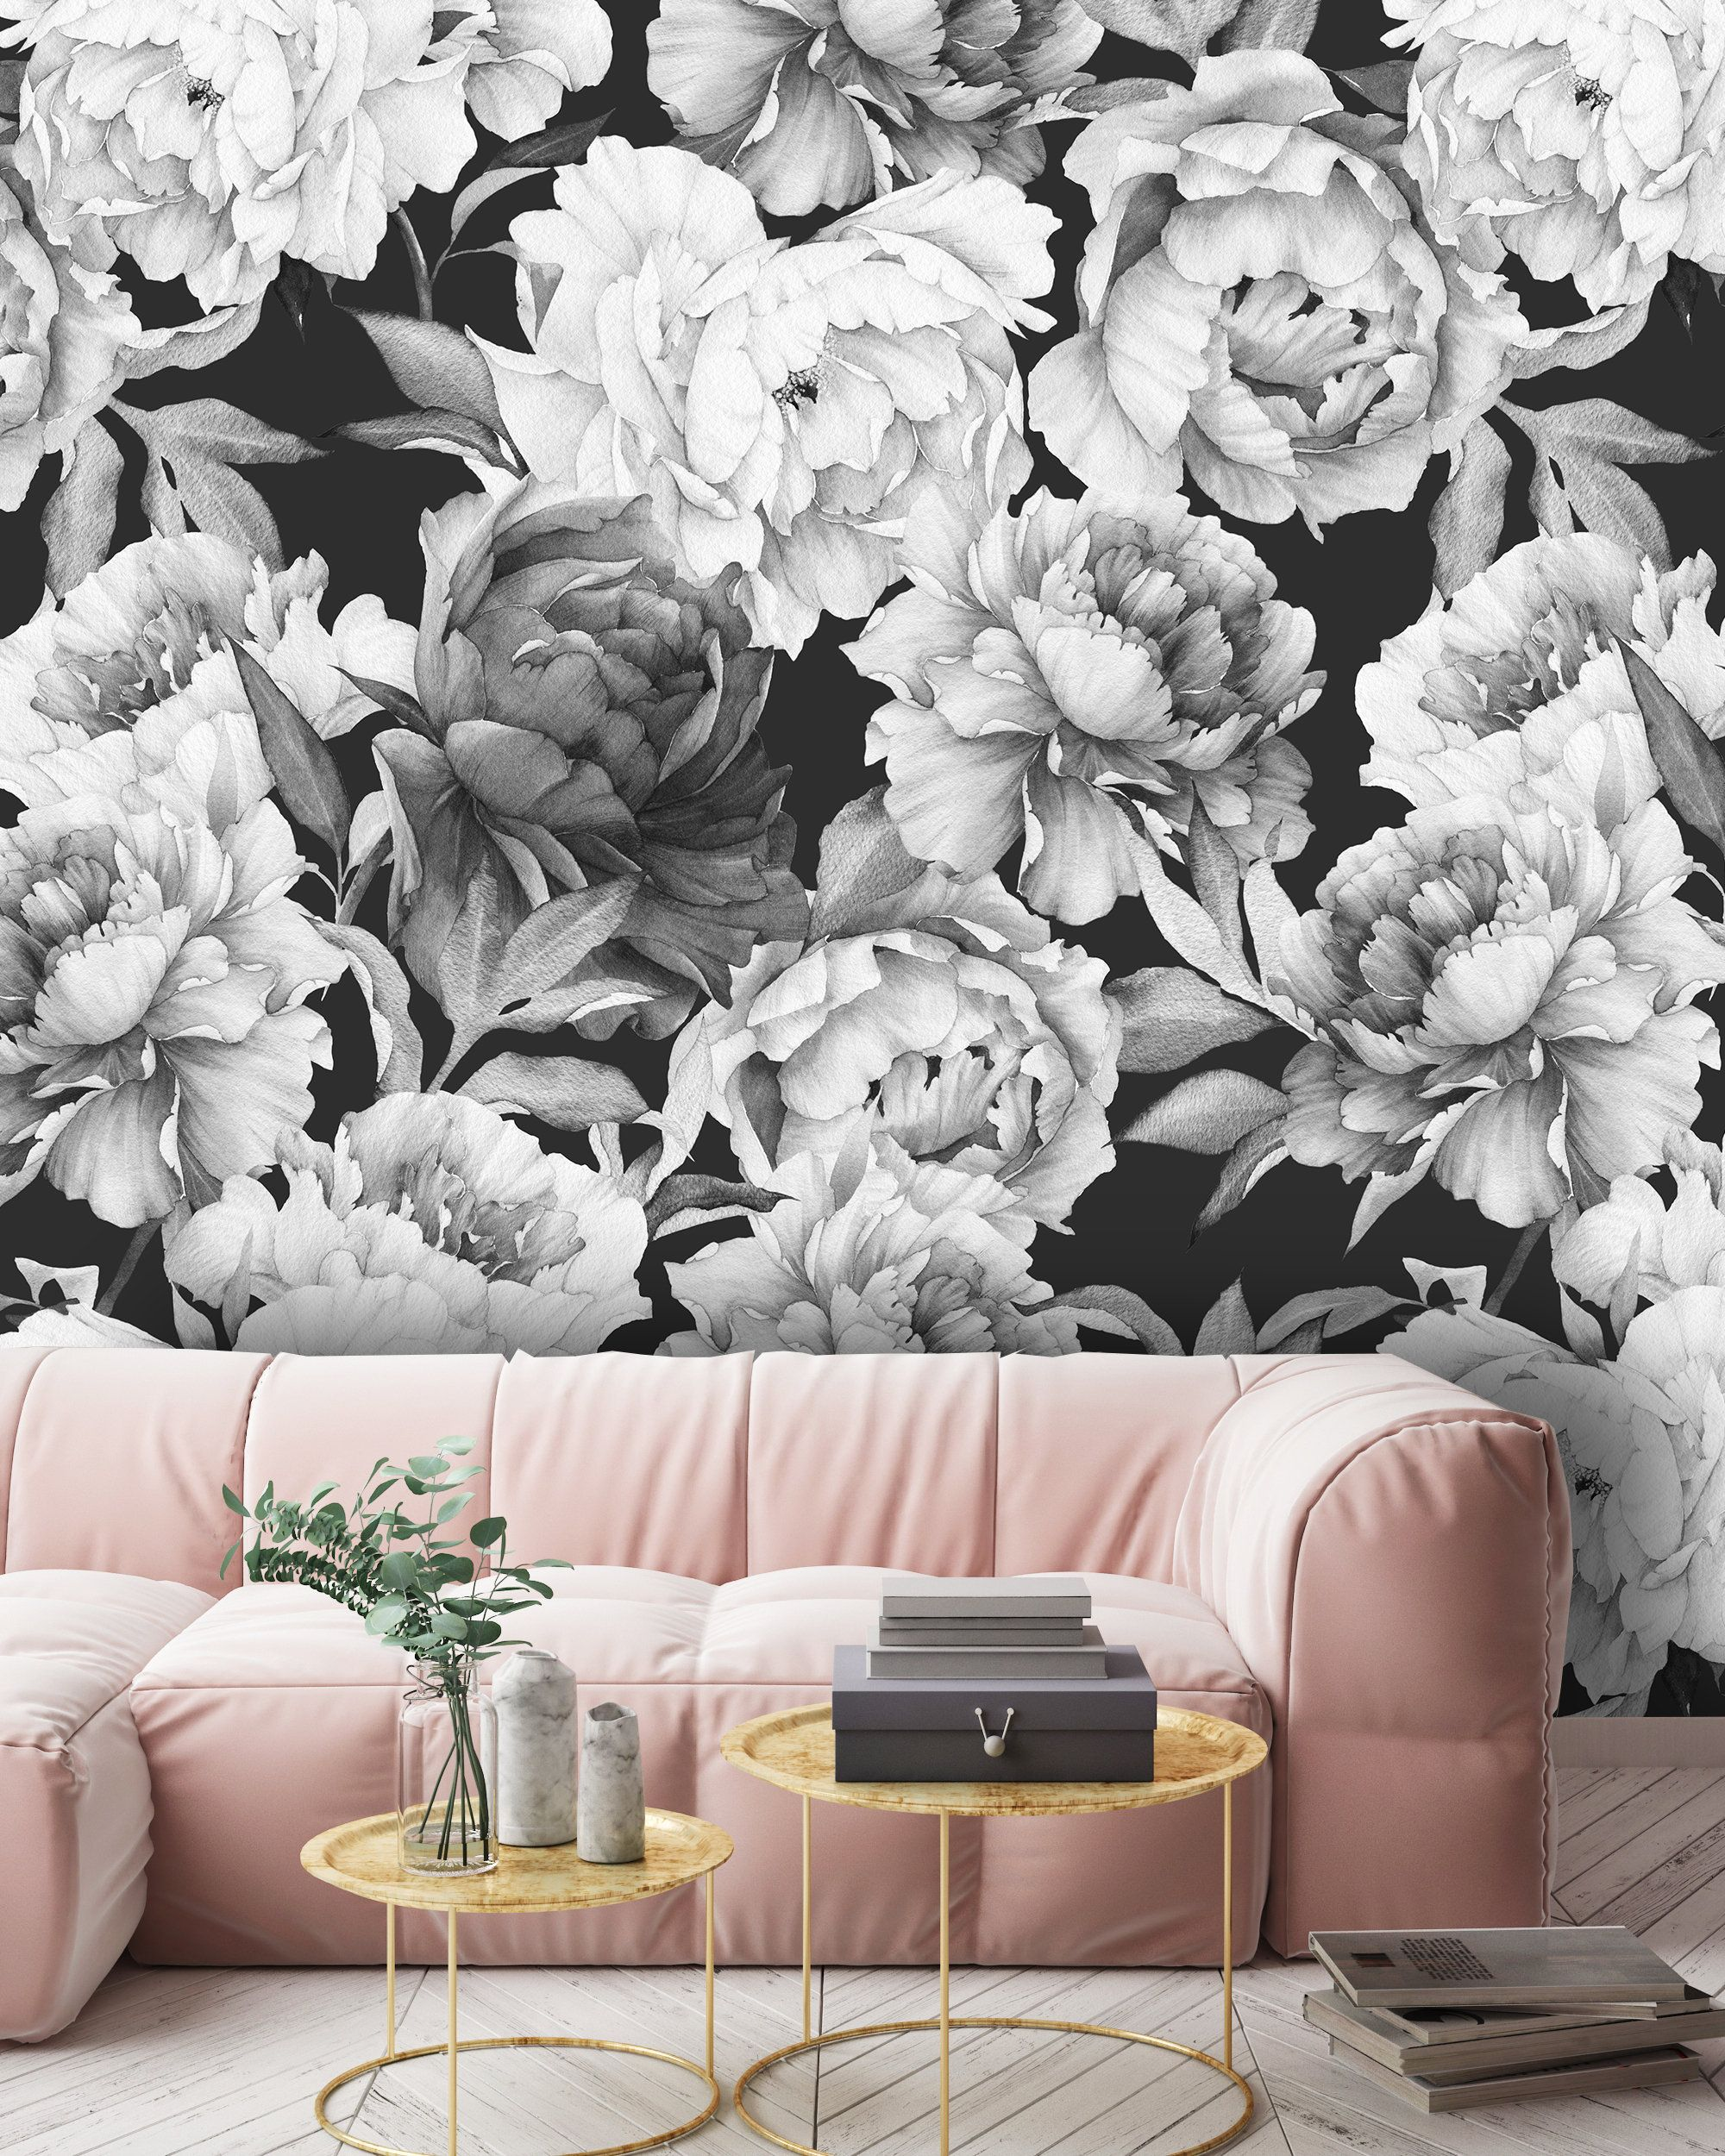 Removable Peel N Stick Wallpaper Self Adhesive Wall Etsy Peel N Stick Wallpaper Black And White Flowers Watercolor Floral Pattern